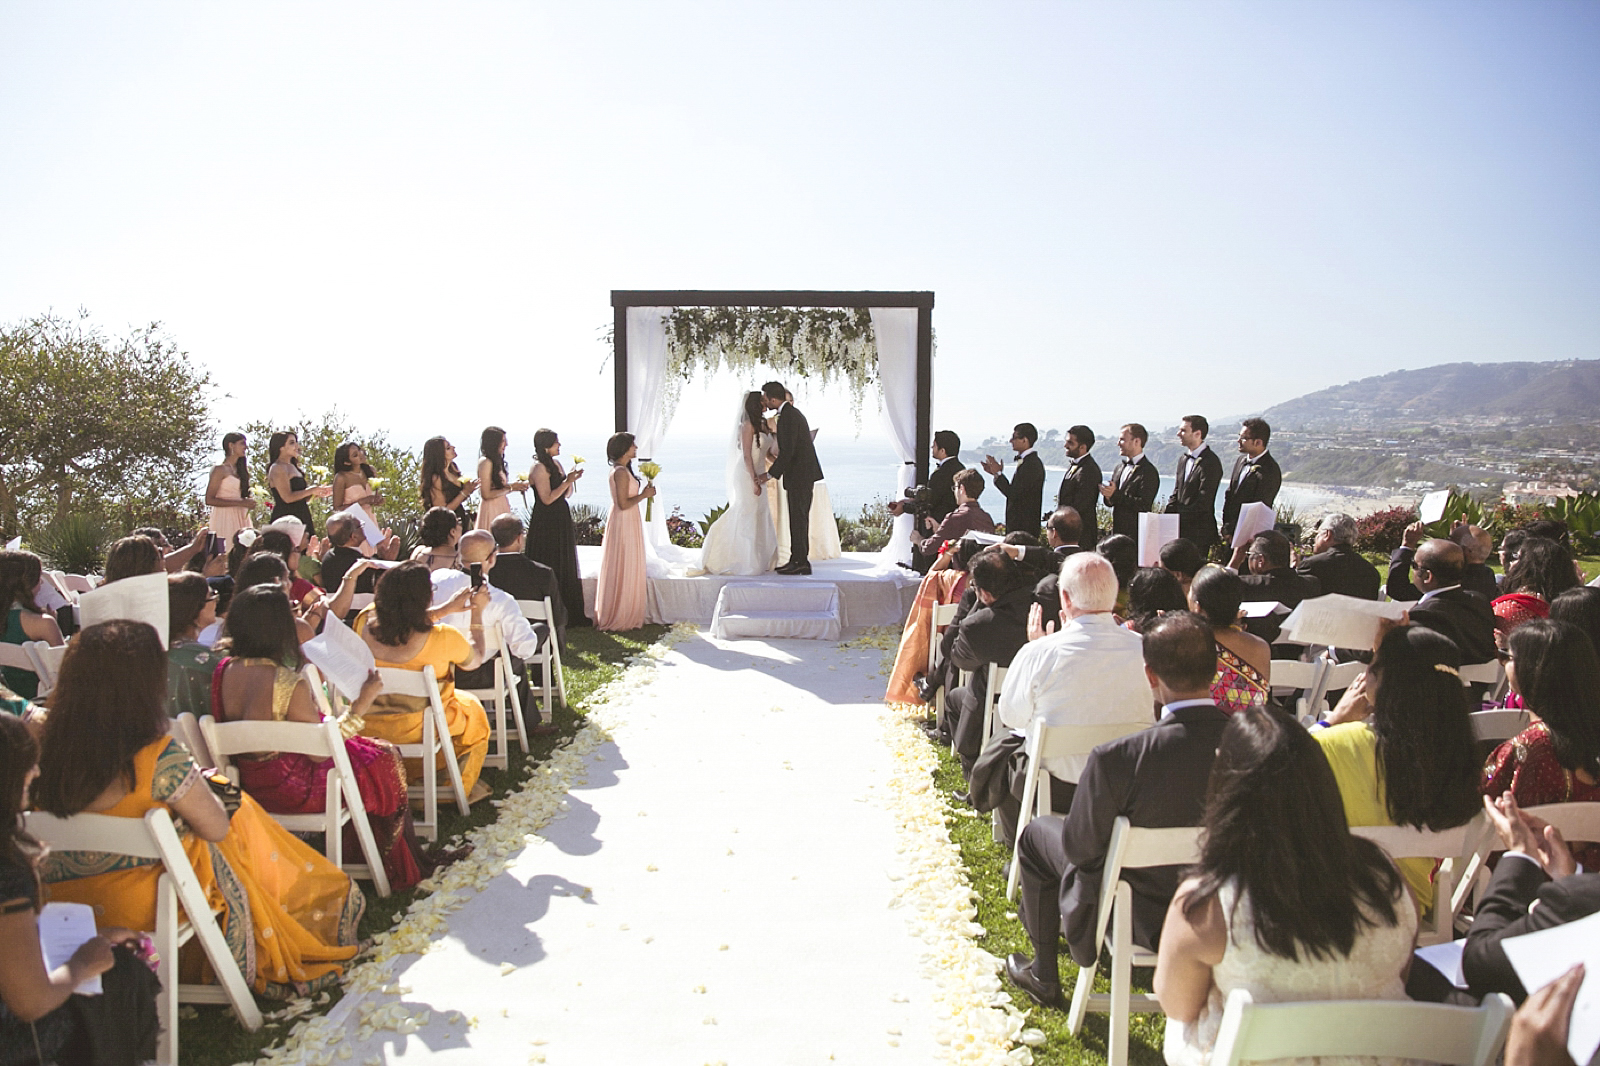 Luxury Wedding in Laguna Beach in Southern California. this was at the Montage Hotel, amazing view of the beach behind the ceremony location.